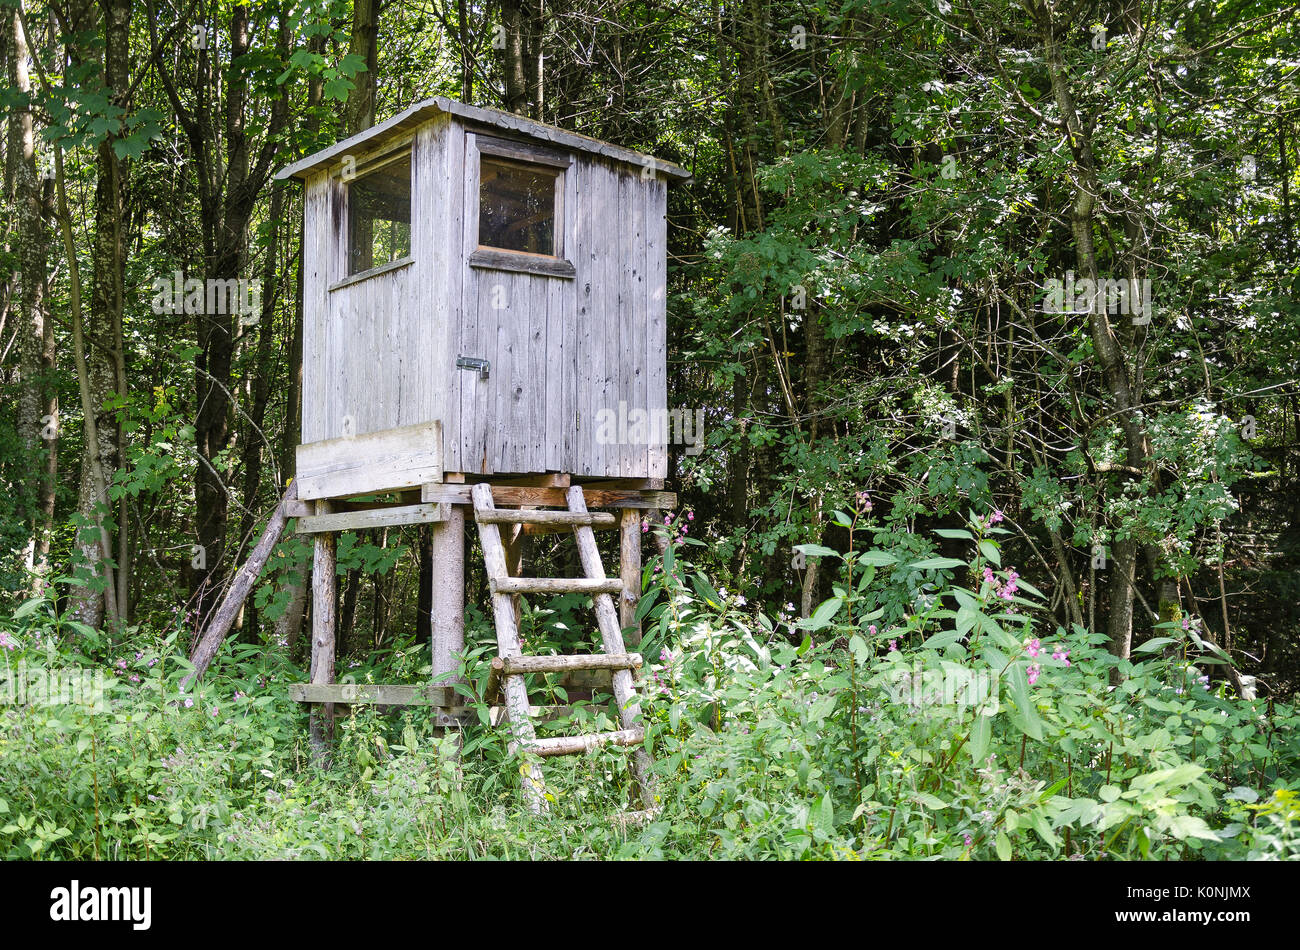 Elegant Wooden Tree Stand In A Forest, Horizontal View. Box Stand, Also Deer Stand.  Enclosed Platform To Elevate The Hunter For A Better Vantage Point.